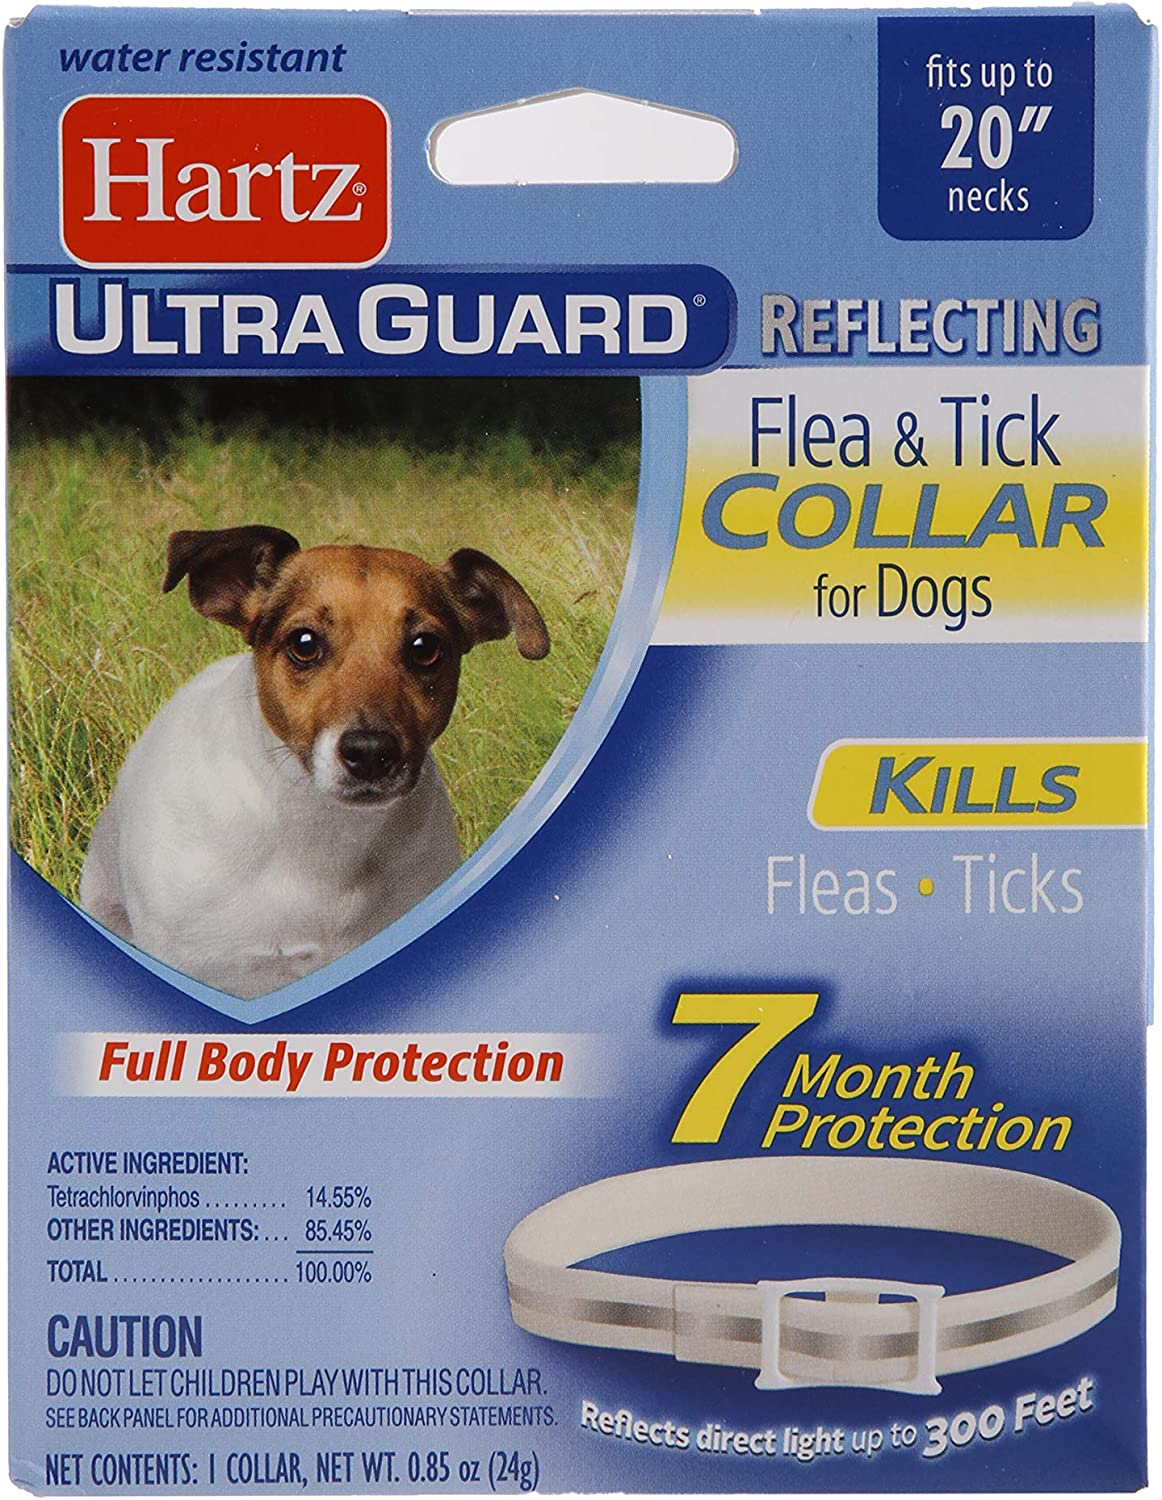 Hartz UltraGuard Reflecting Flea & Tick Collar for Dogs and Puppies 1 ea, Reflective, Dogs and Puppies up to 20